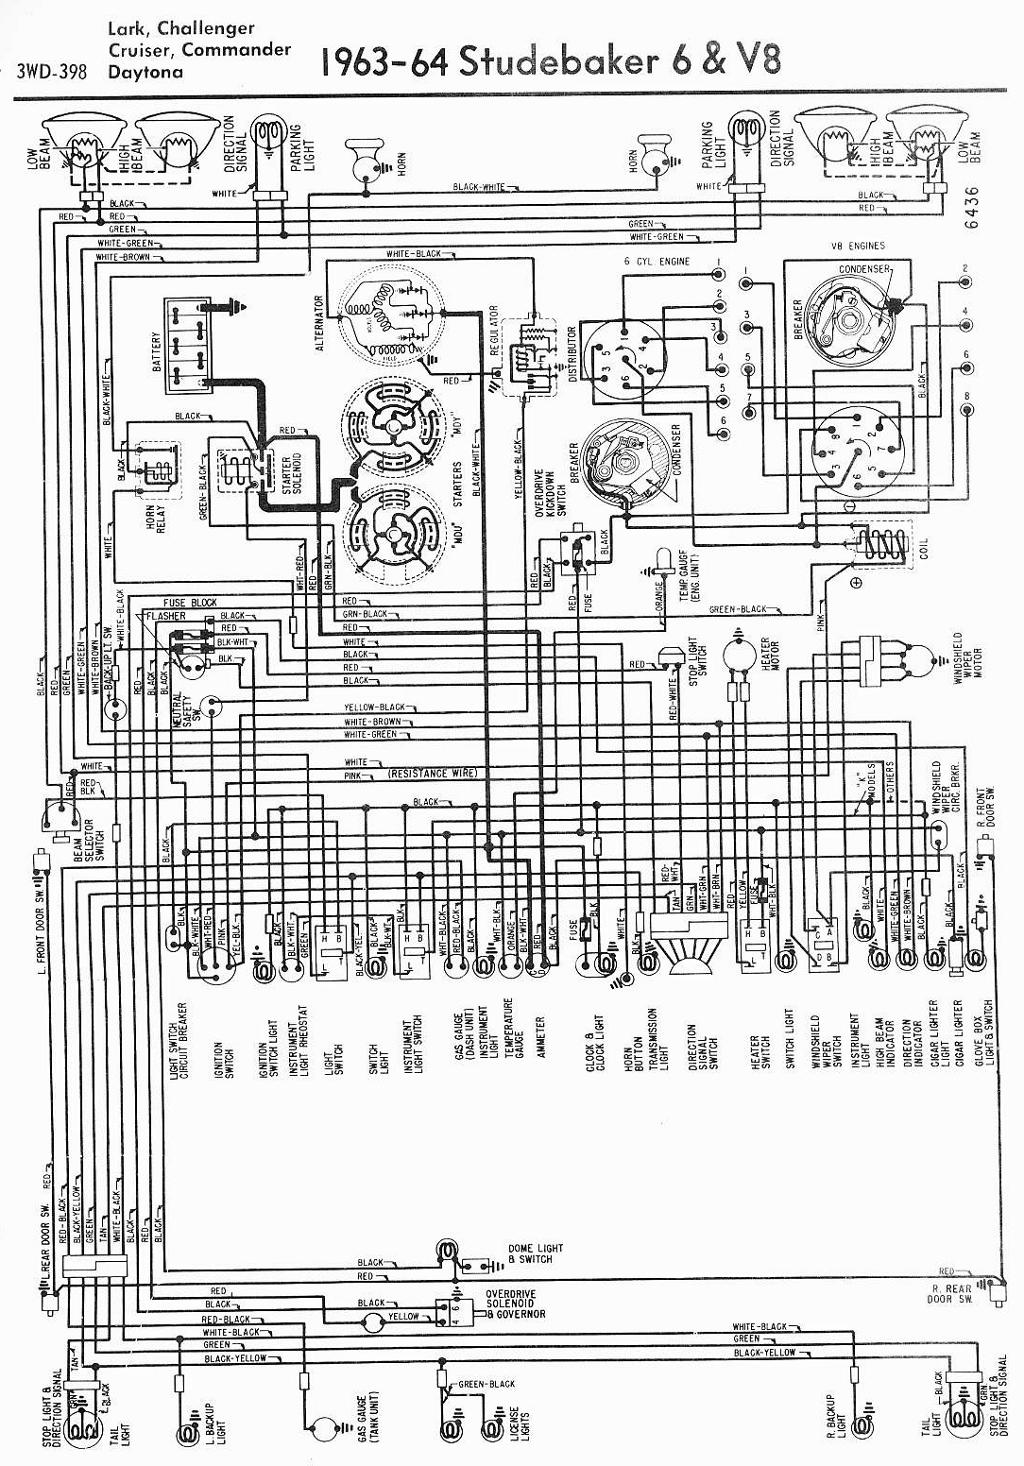 63 Plymouth Wiring Diagram Trusted Wiring Diagram 1963 Plymouth Barracuda  1963 Dodge Lancer Wiring Diagram